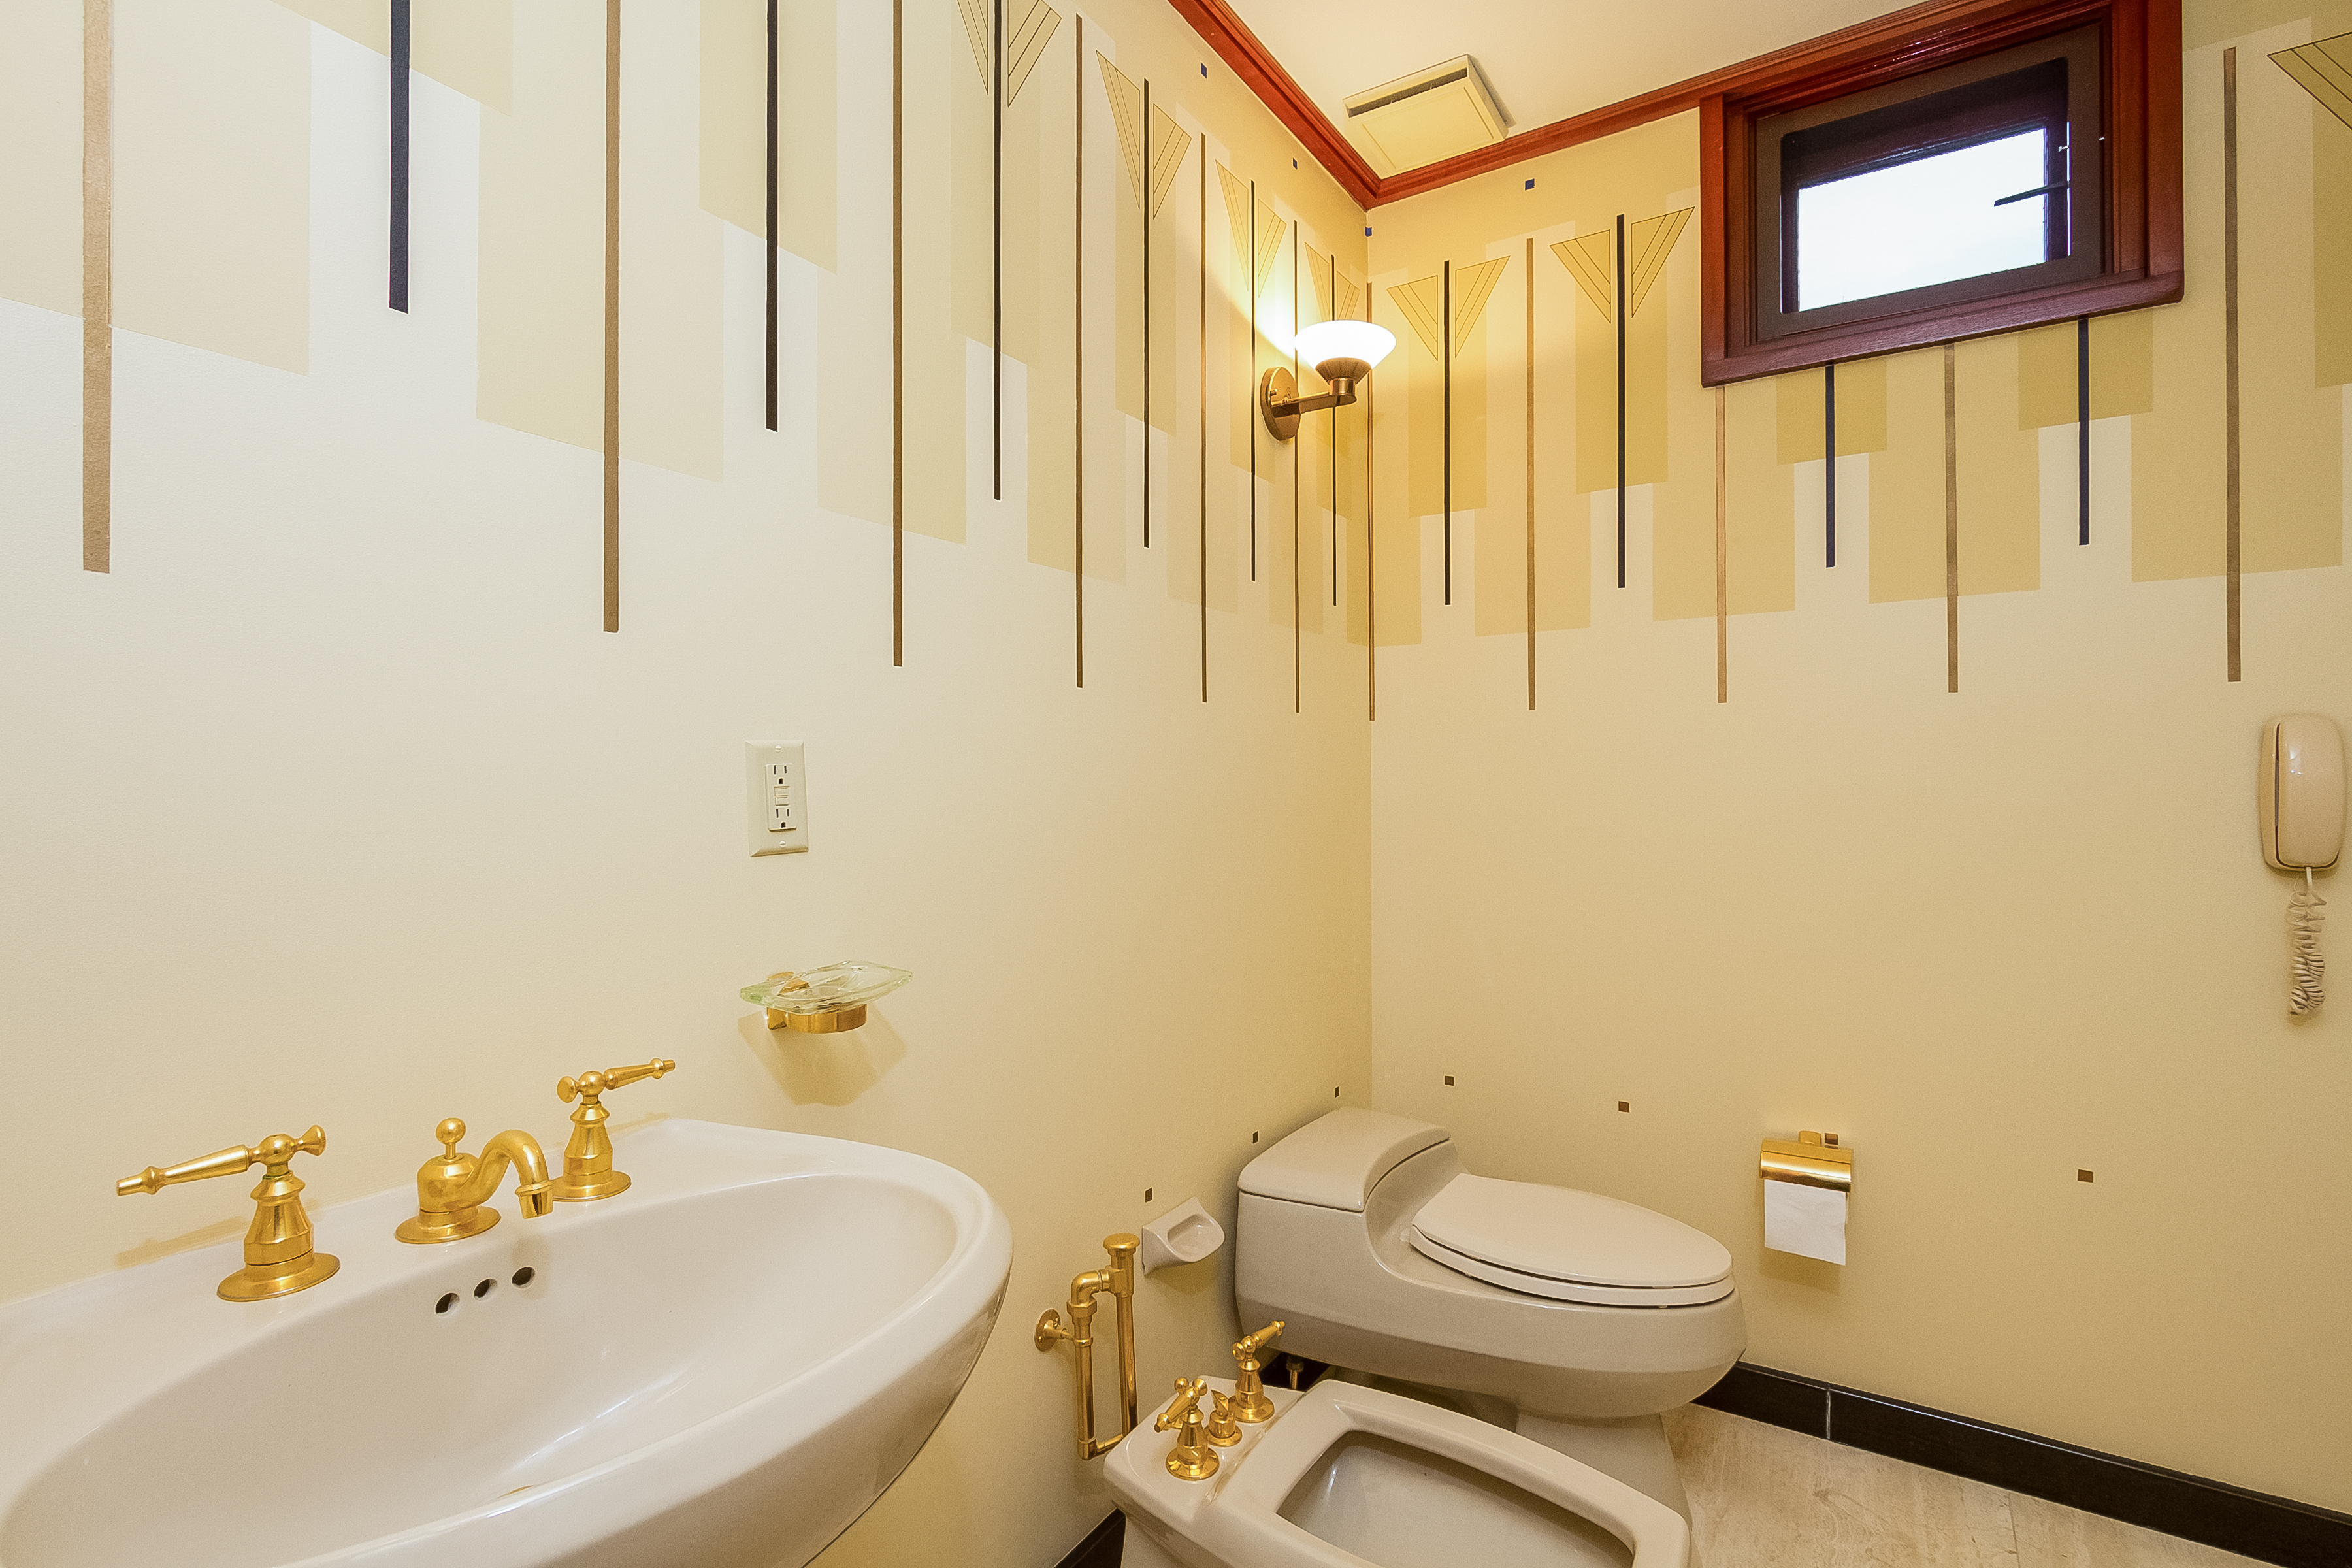 042-Master_Bathroom-4840822-large